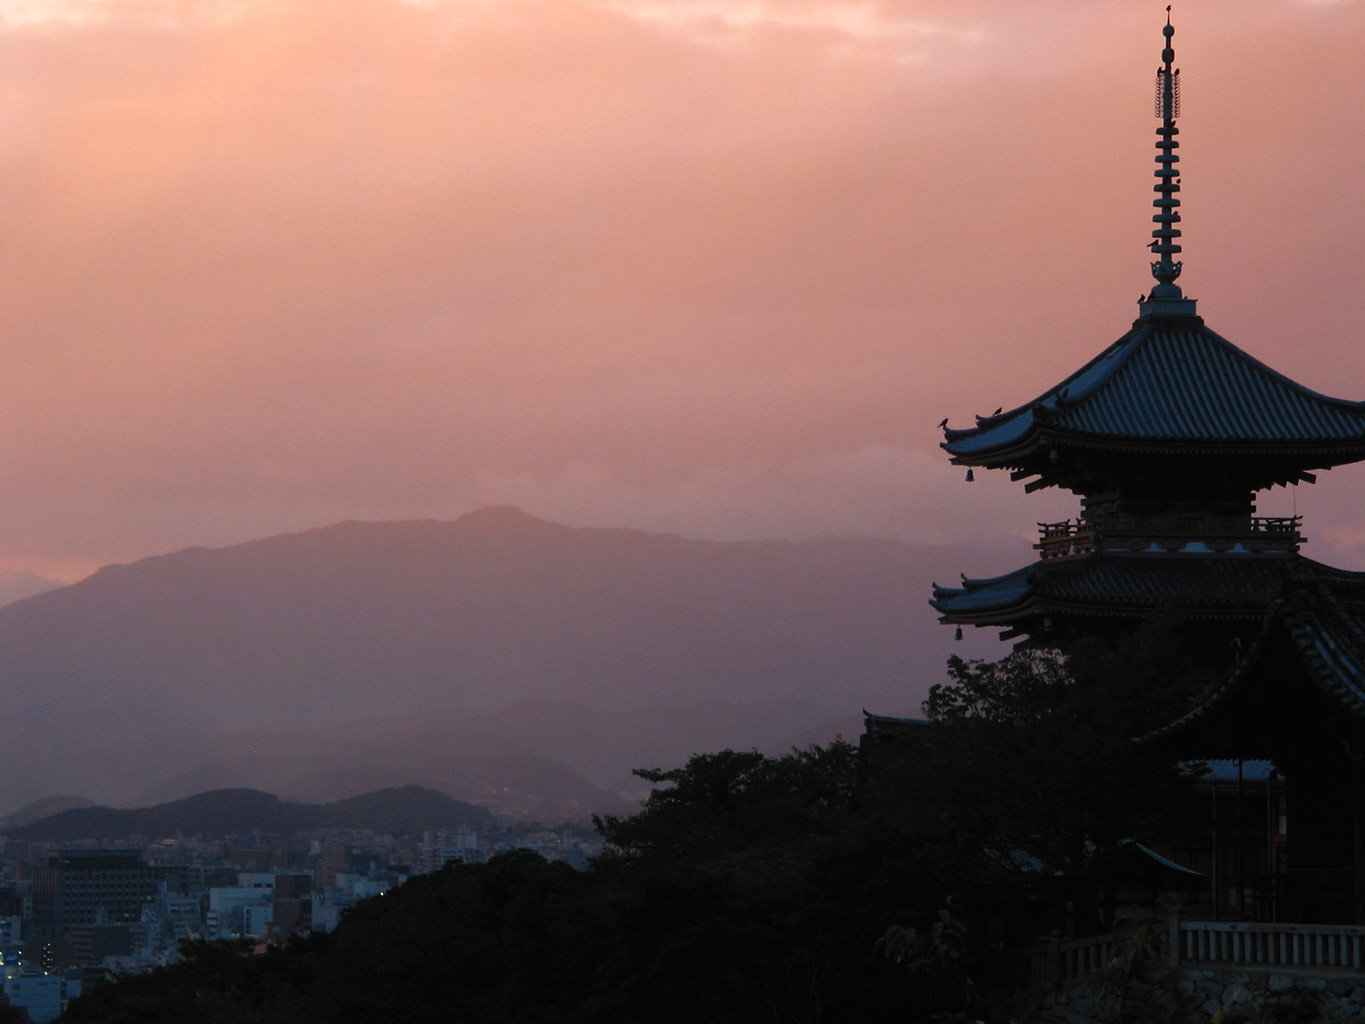 Beauty Buildings Cultural Health + Wellness Japan Kyoto Natural wonders San Francisco Scenic views Travel Tips outdoor sky atmospheric phenomenon dawn sunrise Sunset horizon cloud tower evening dusk morning mountain reflection temple distance